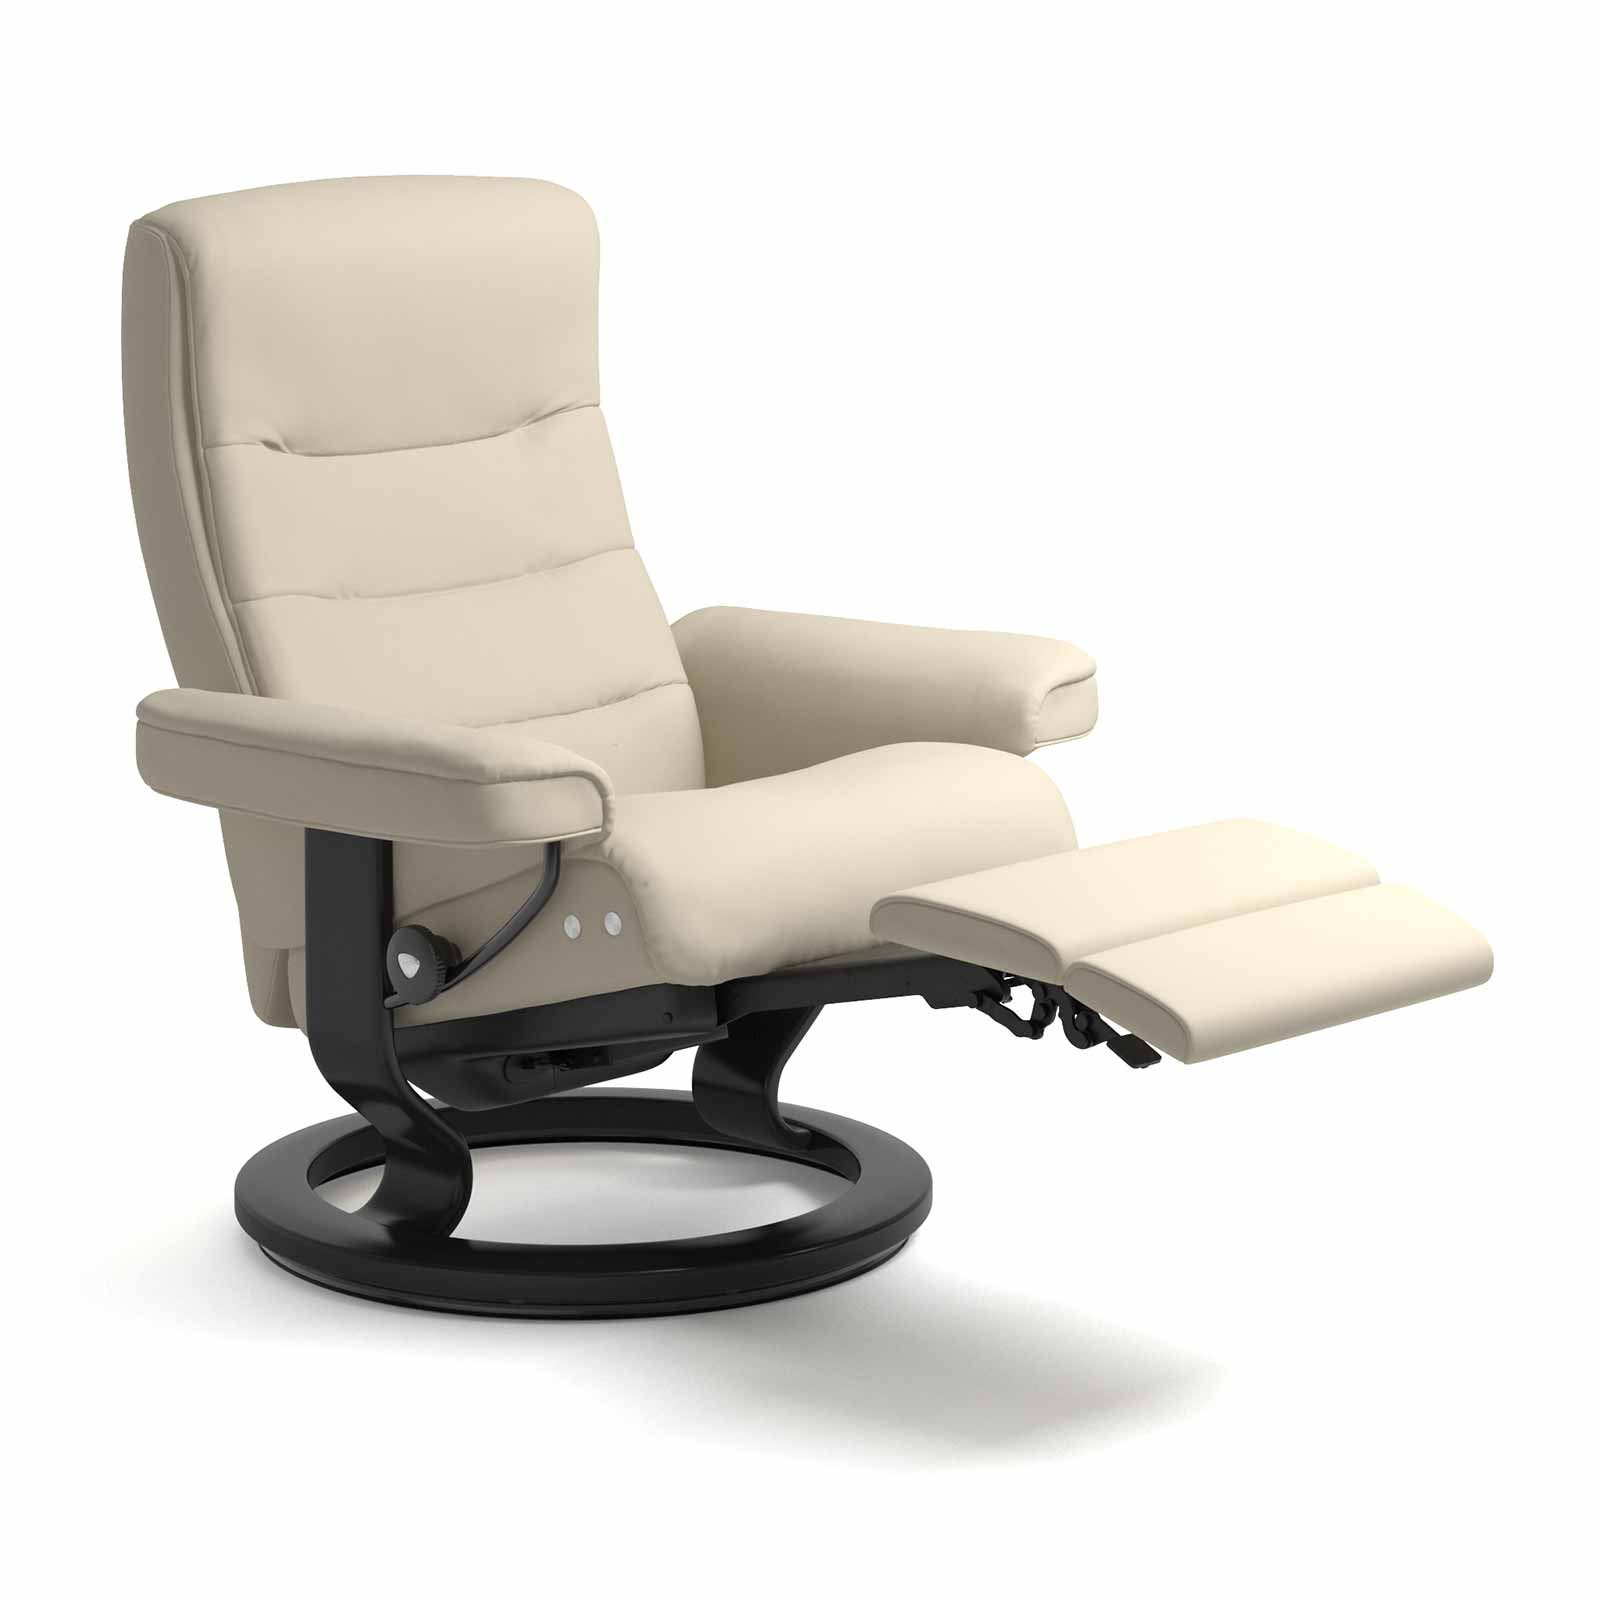 Stressless Sessel Berlin Stressless Sessel Nordic Legcomfort Batick Cream Mit Hocker